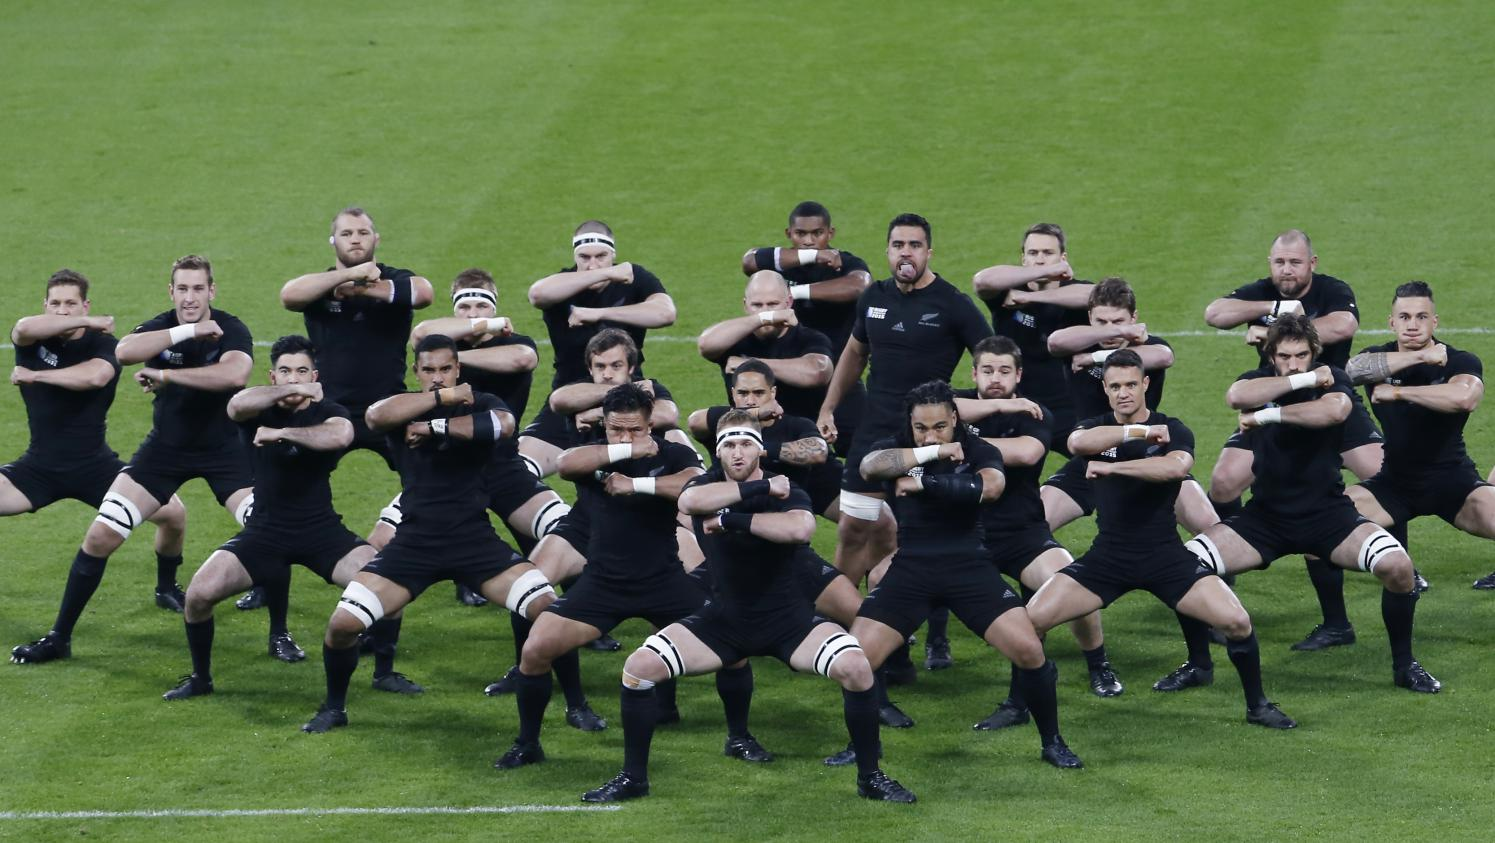 Rugby comment r ussir le haka des all blacks en sept gifs - Coupe du monde de rugby france ...